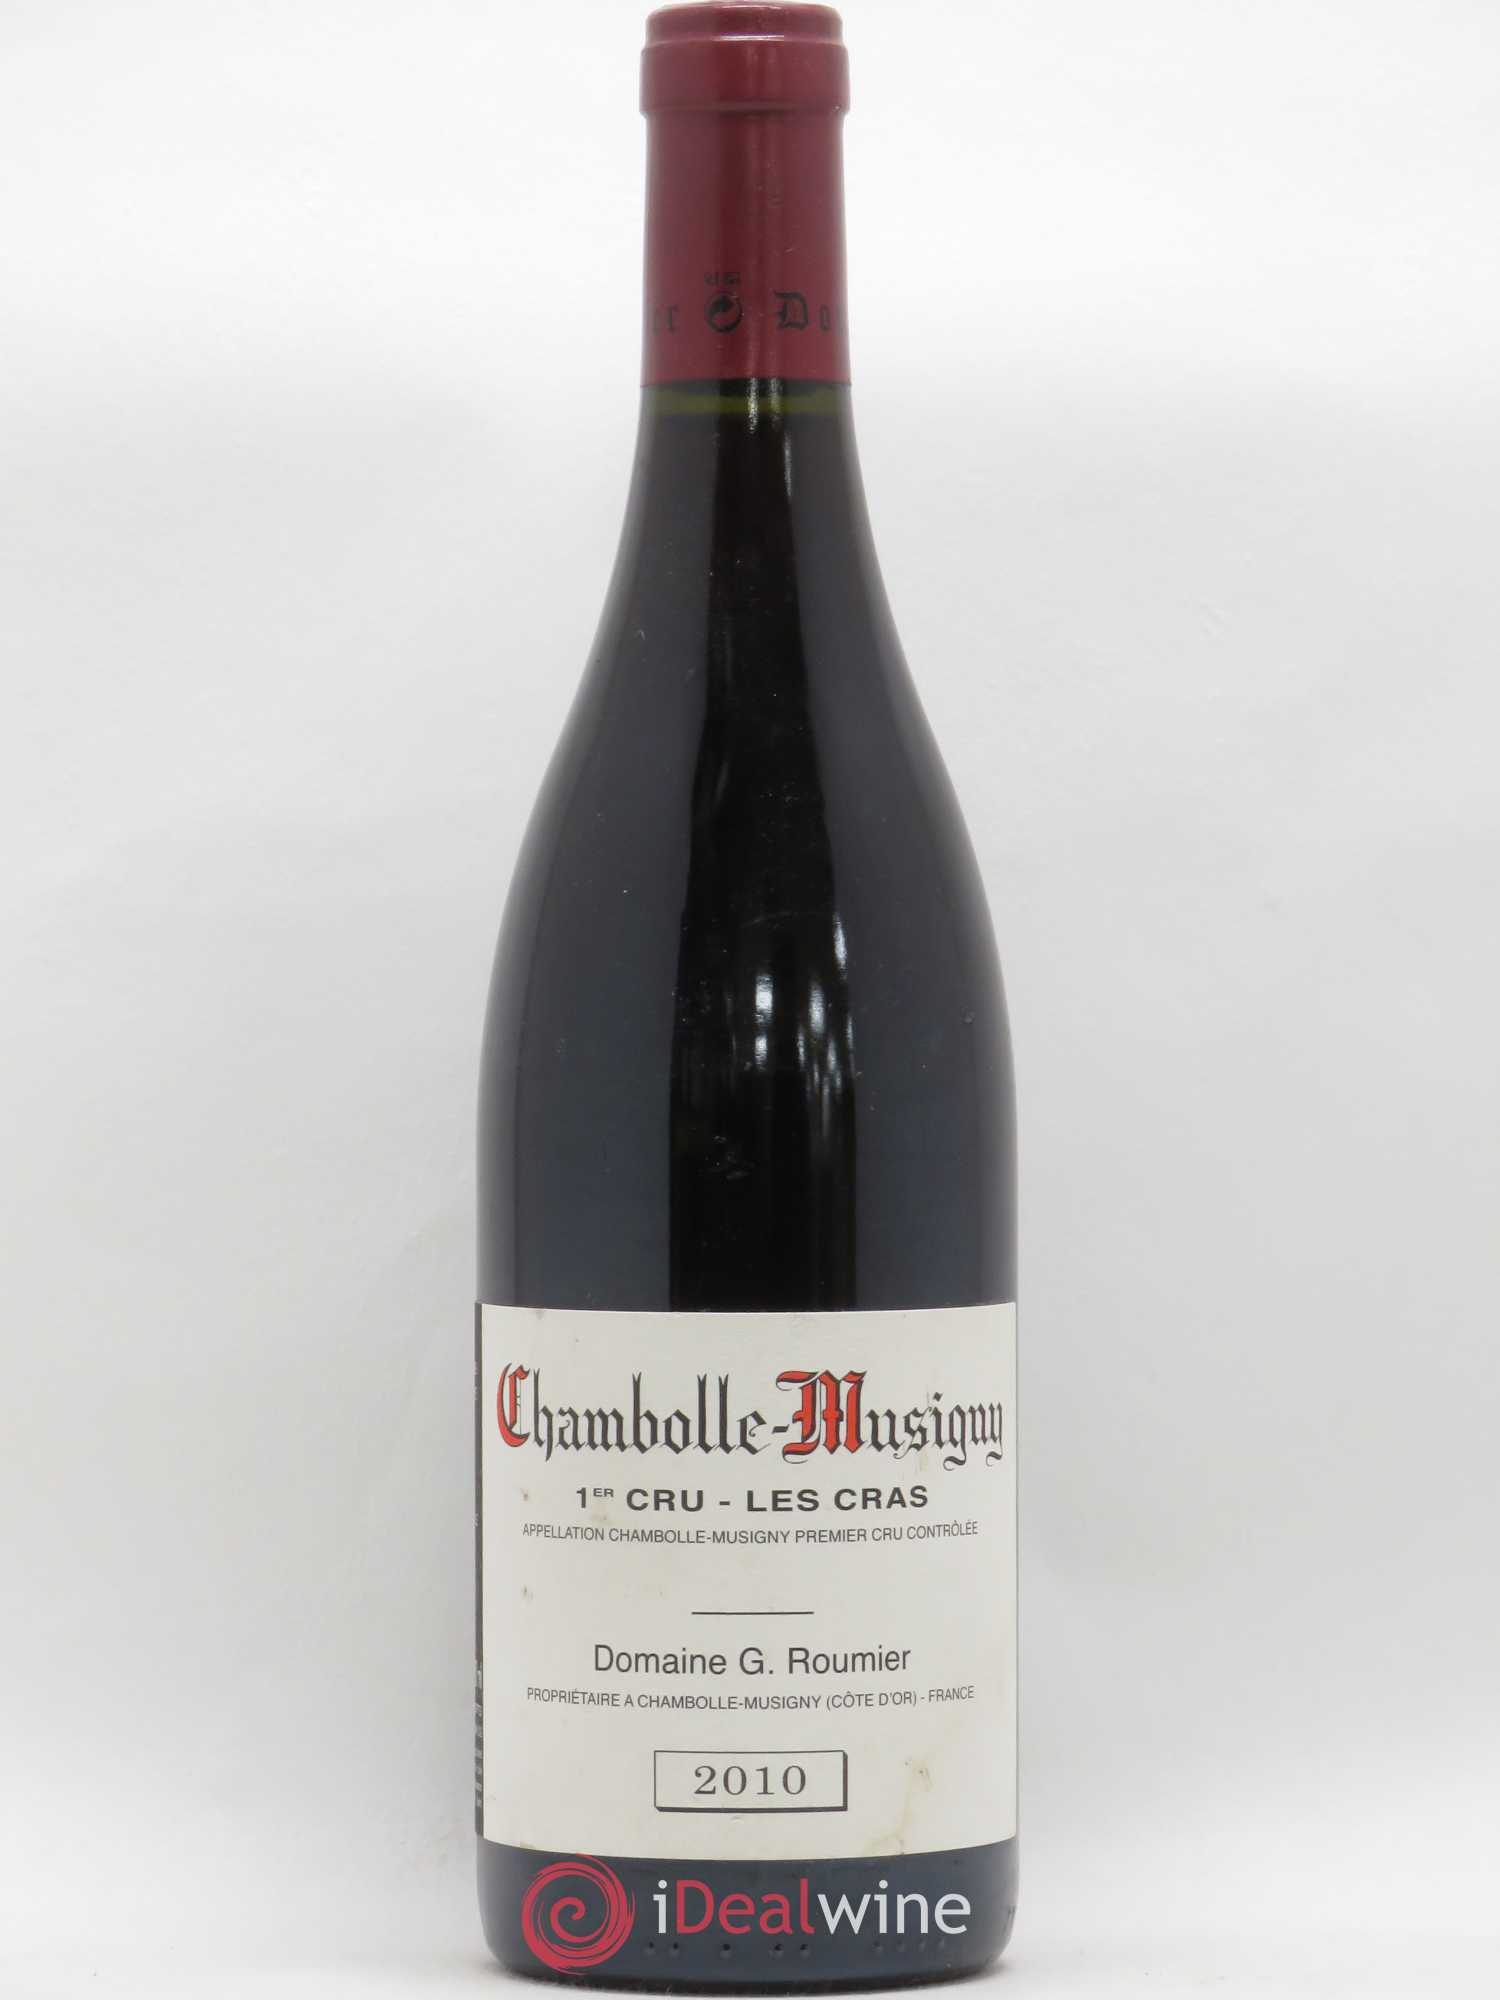 Chambolle-Musigny 1er Cru Les Cras Georges Roumier (Domaine)  2010 - Lot of 1 Bottle